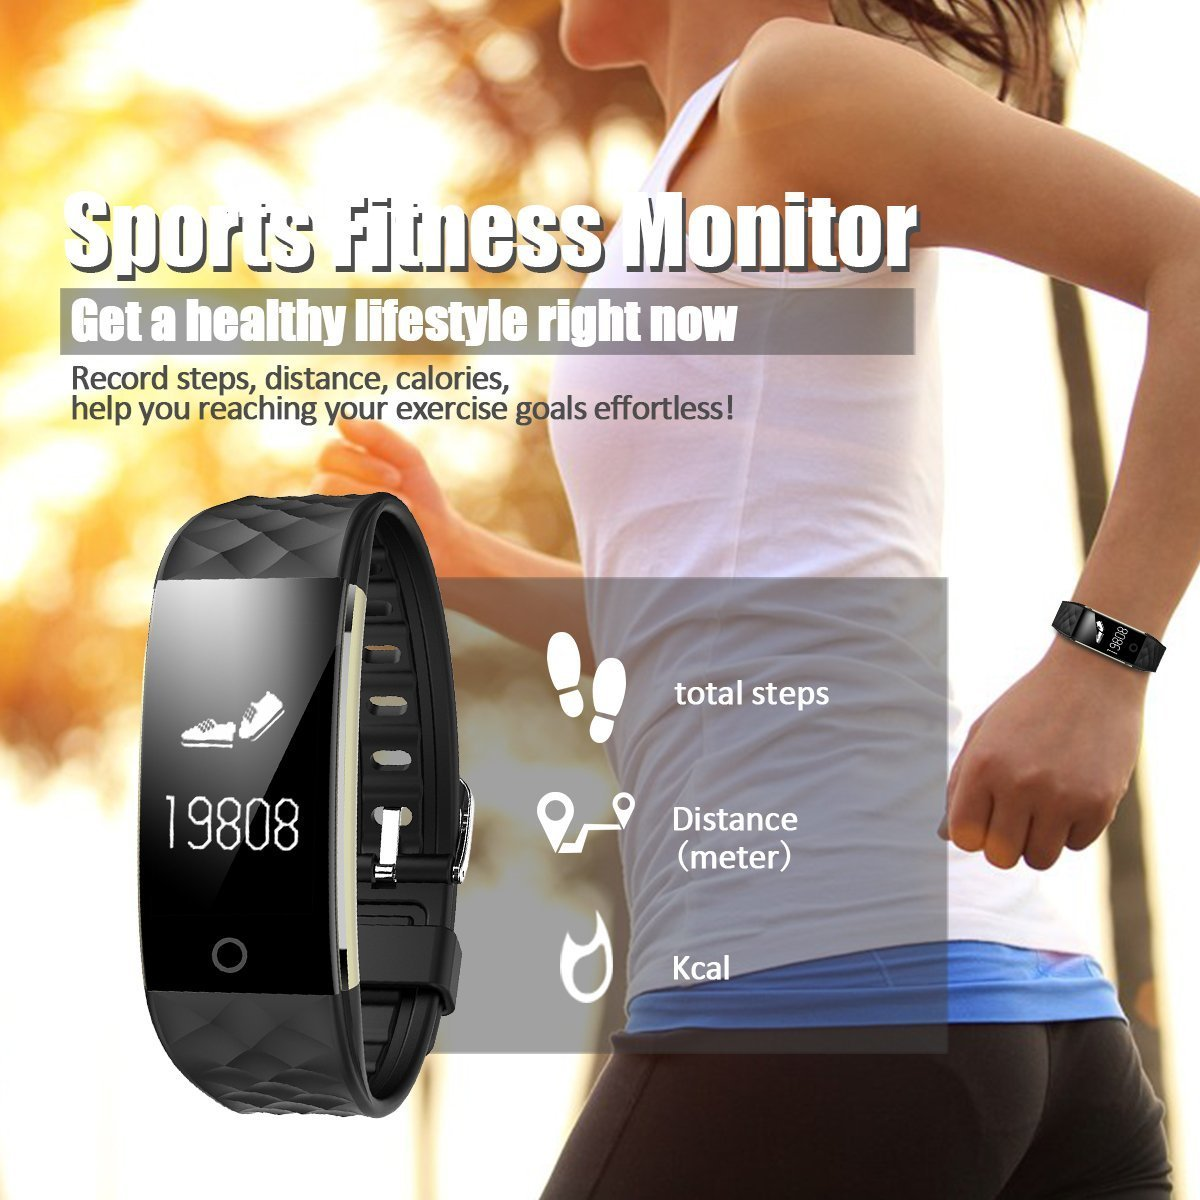 Fitness Tracker,SinoProHeart Rate Monitor Smart BraceletIP67 Waterproof Fitness Wristband with OLED Touch ScreenStep TrackerSleep MonitorCall Reminder for iPhoneAndroid Smartphones (Black)